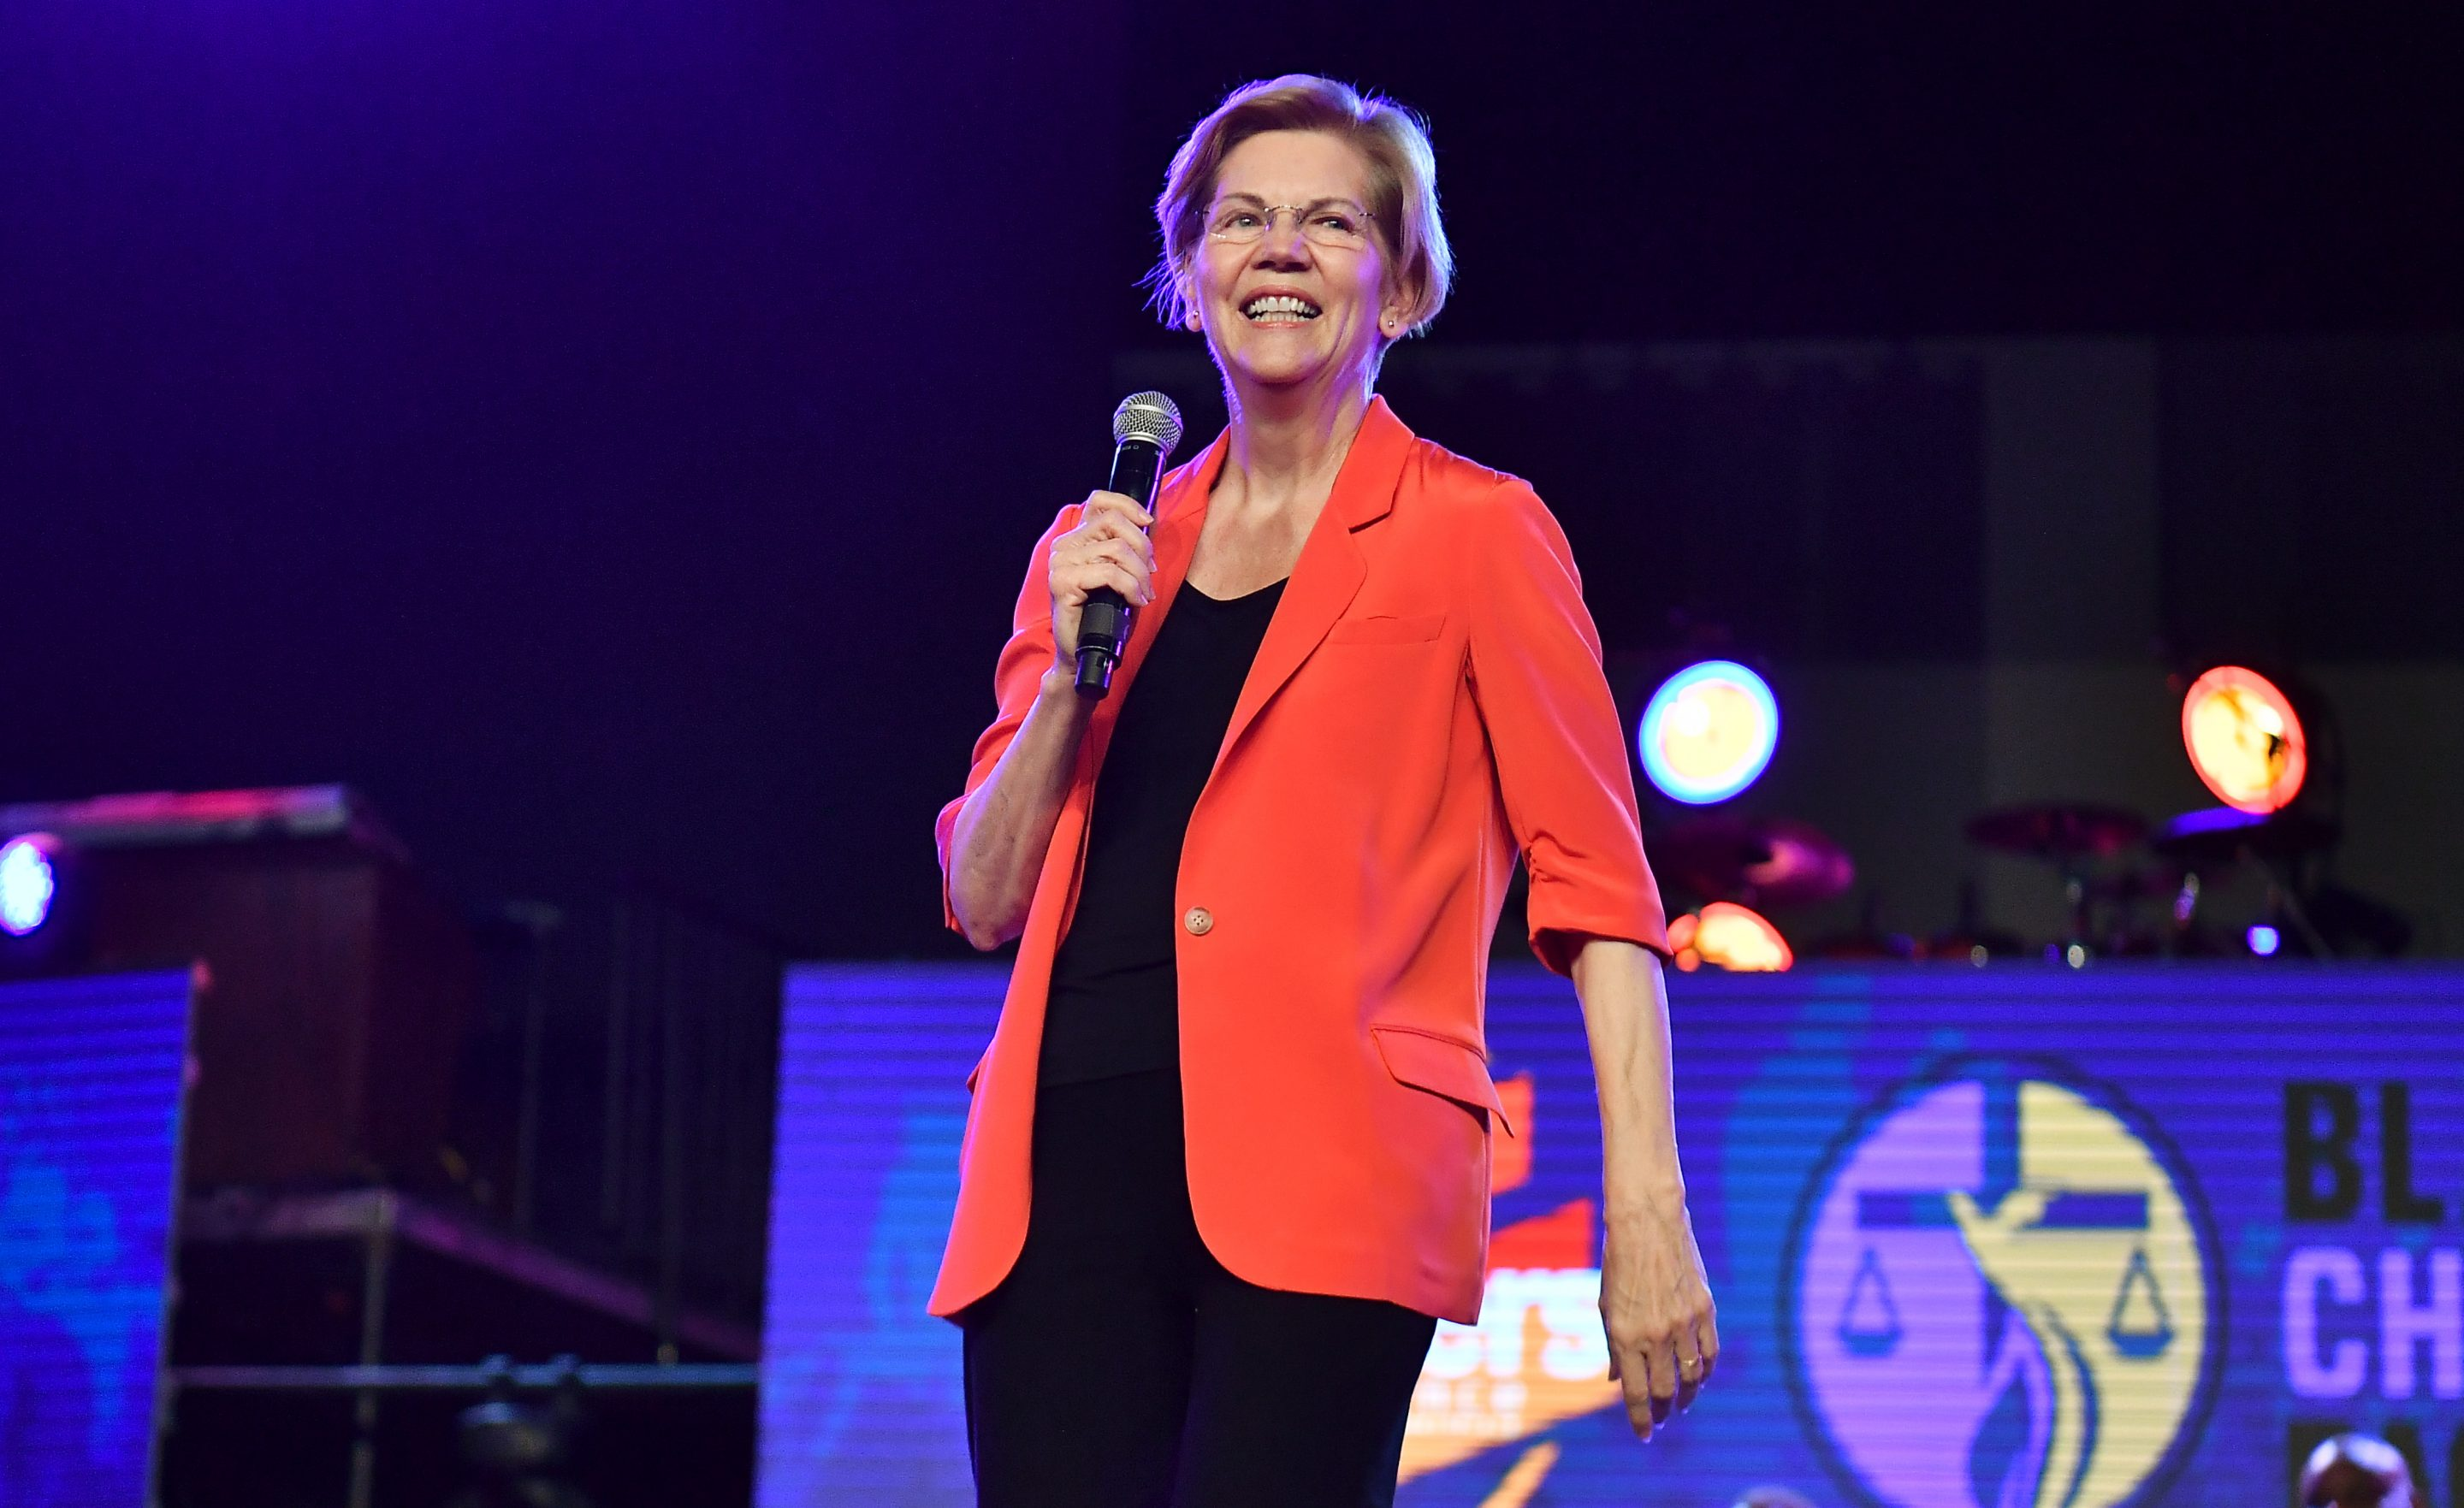 Elizabeth Warren at 2019 Young Leaders Conference